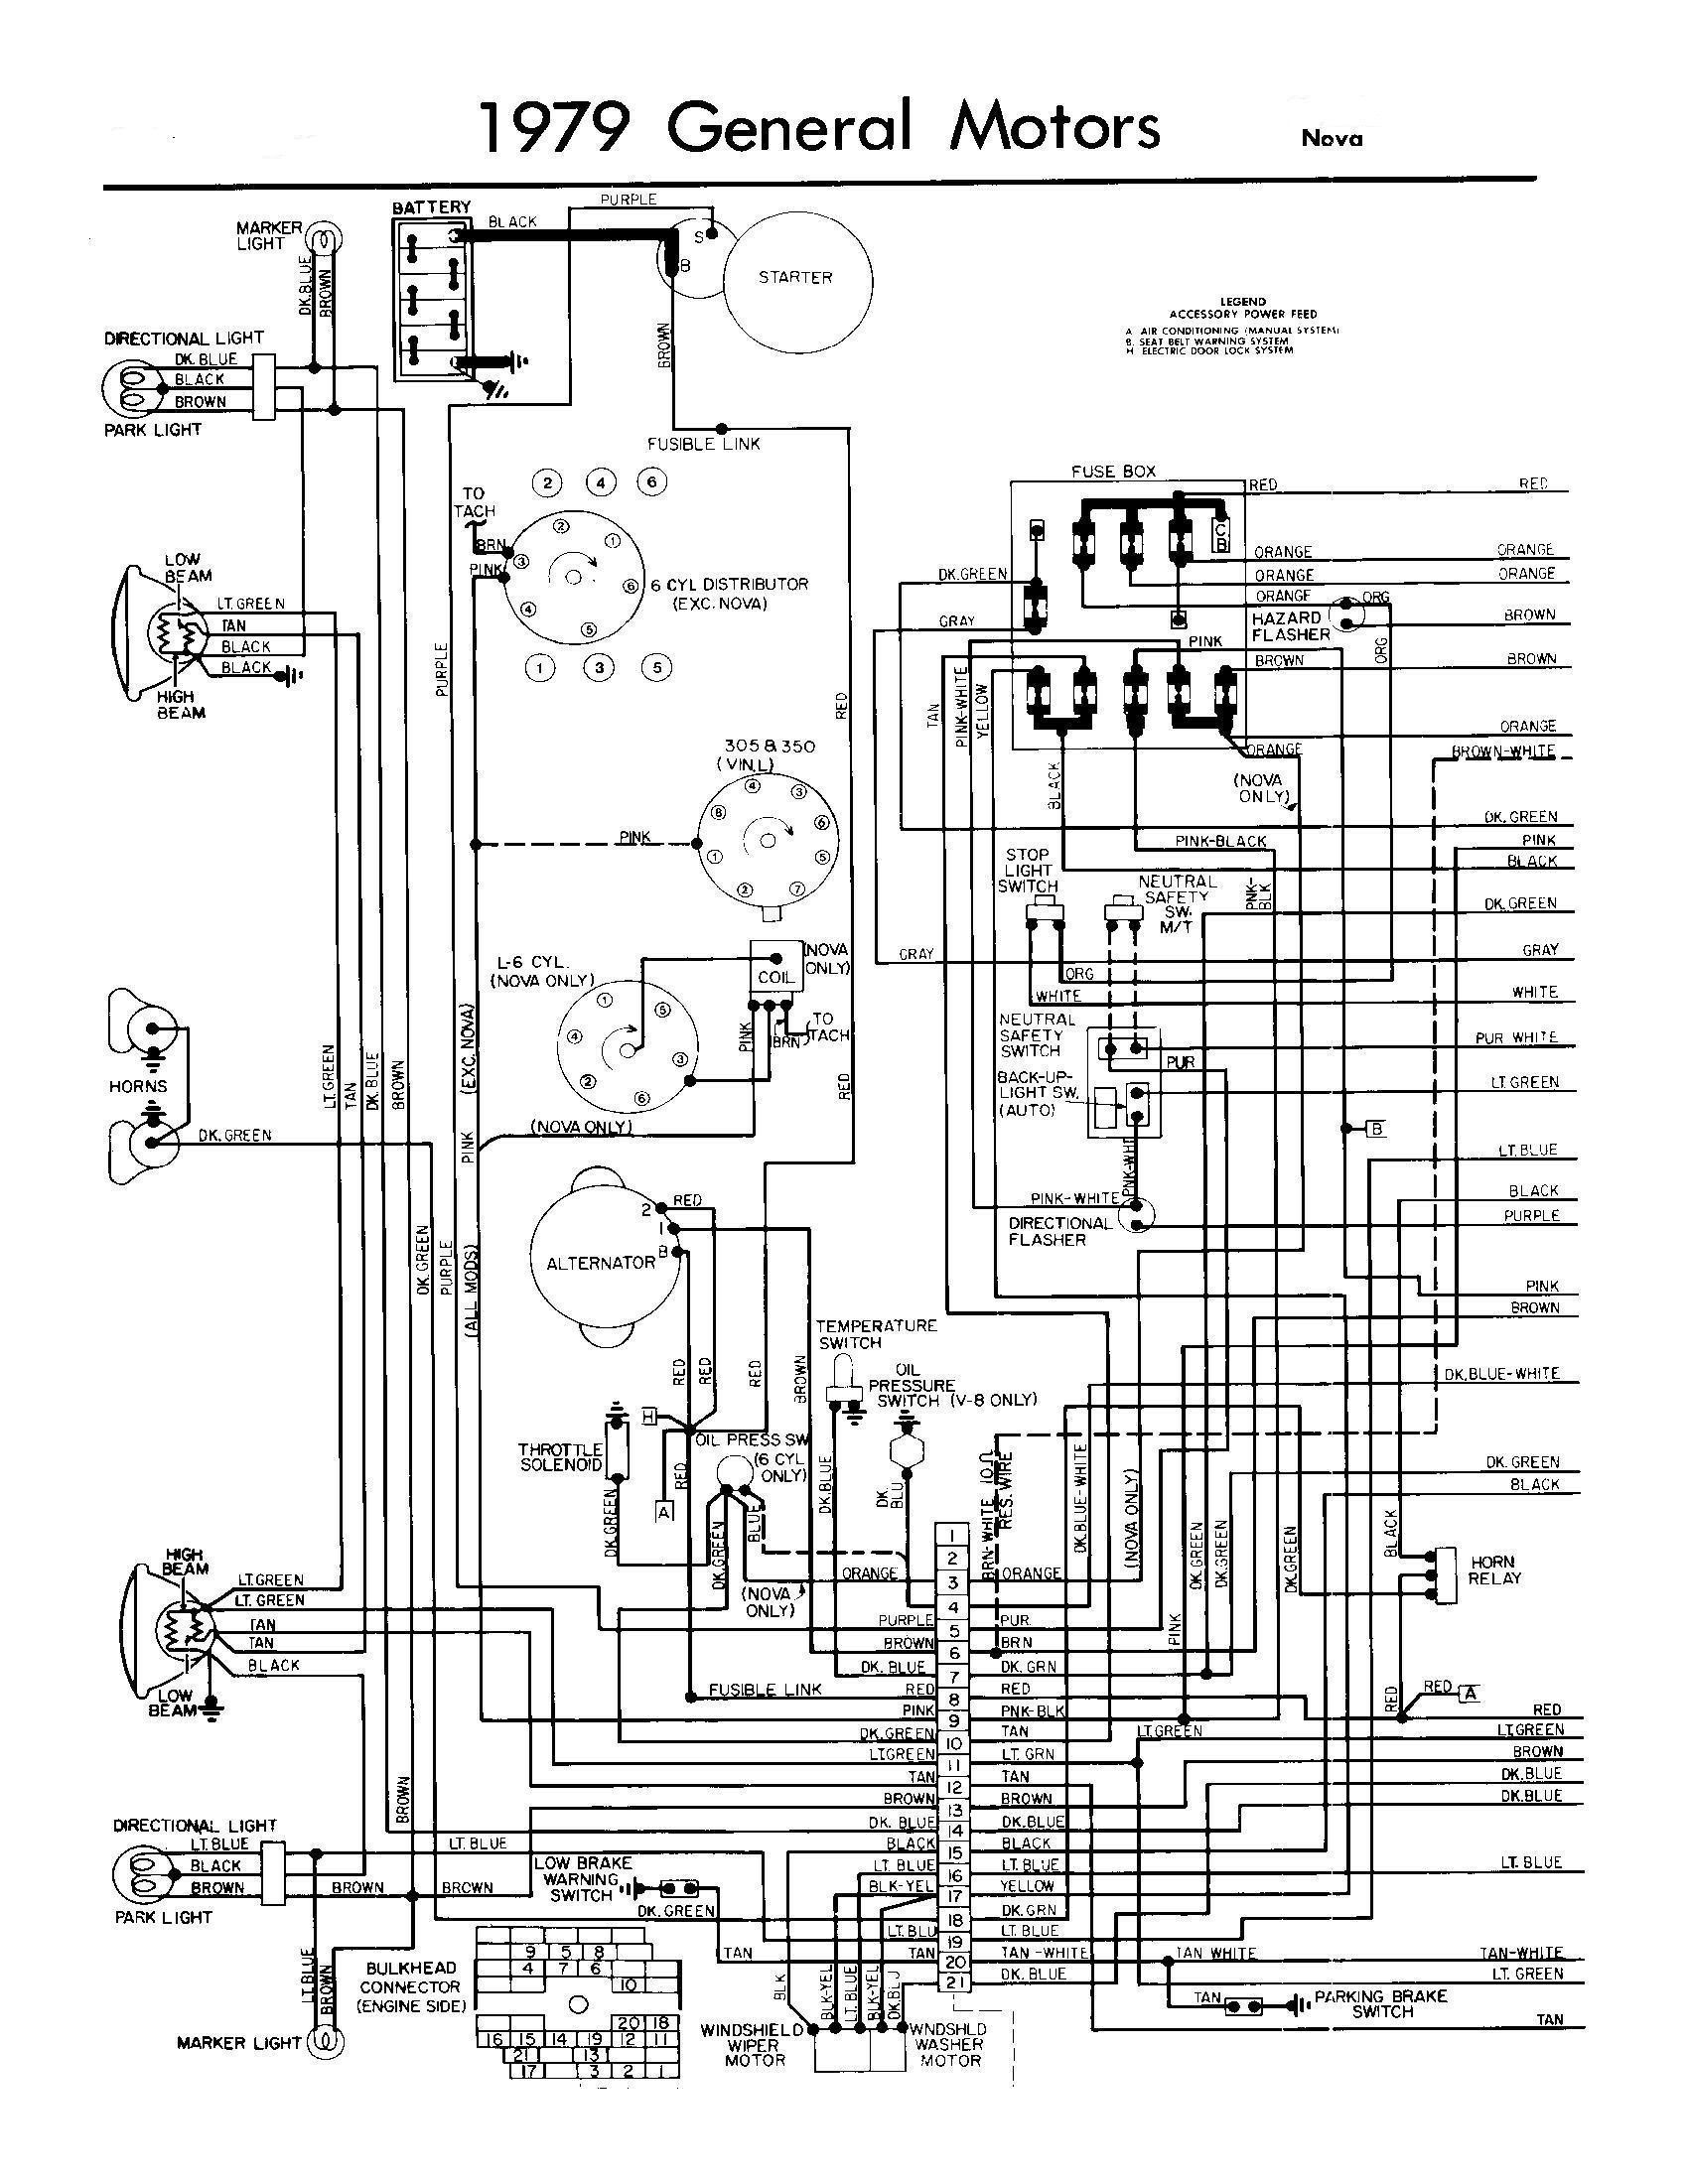 1975 F250 Ignition Module Schematic Circuit Wiring And Diagram Hub 75 Fuse Box Chevrolet Coil Diy Enthusiasts Diagrams U2022 Rh Broadwaycomputers Us Parts